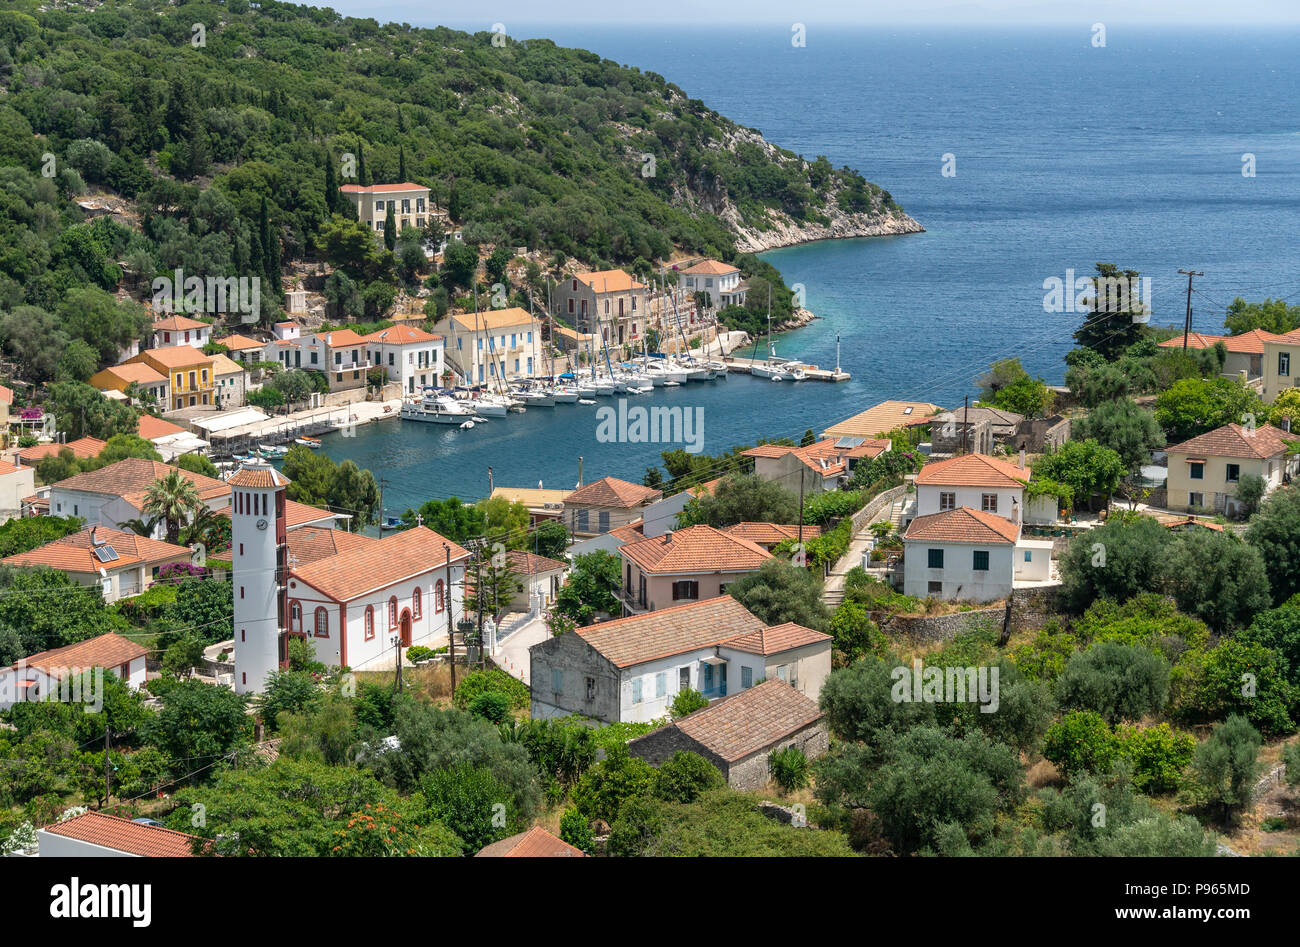 Looking down on the village and harbour of Kioni on the north eastern side of the island of Ithaca, Ionian Sea, Greece - Stock Image